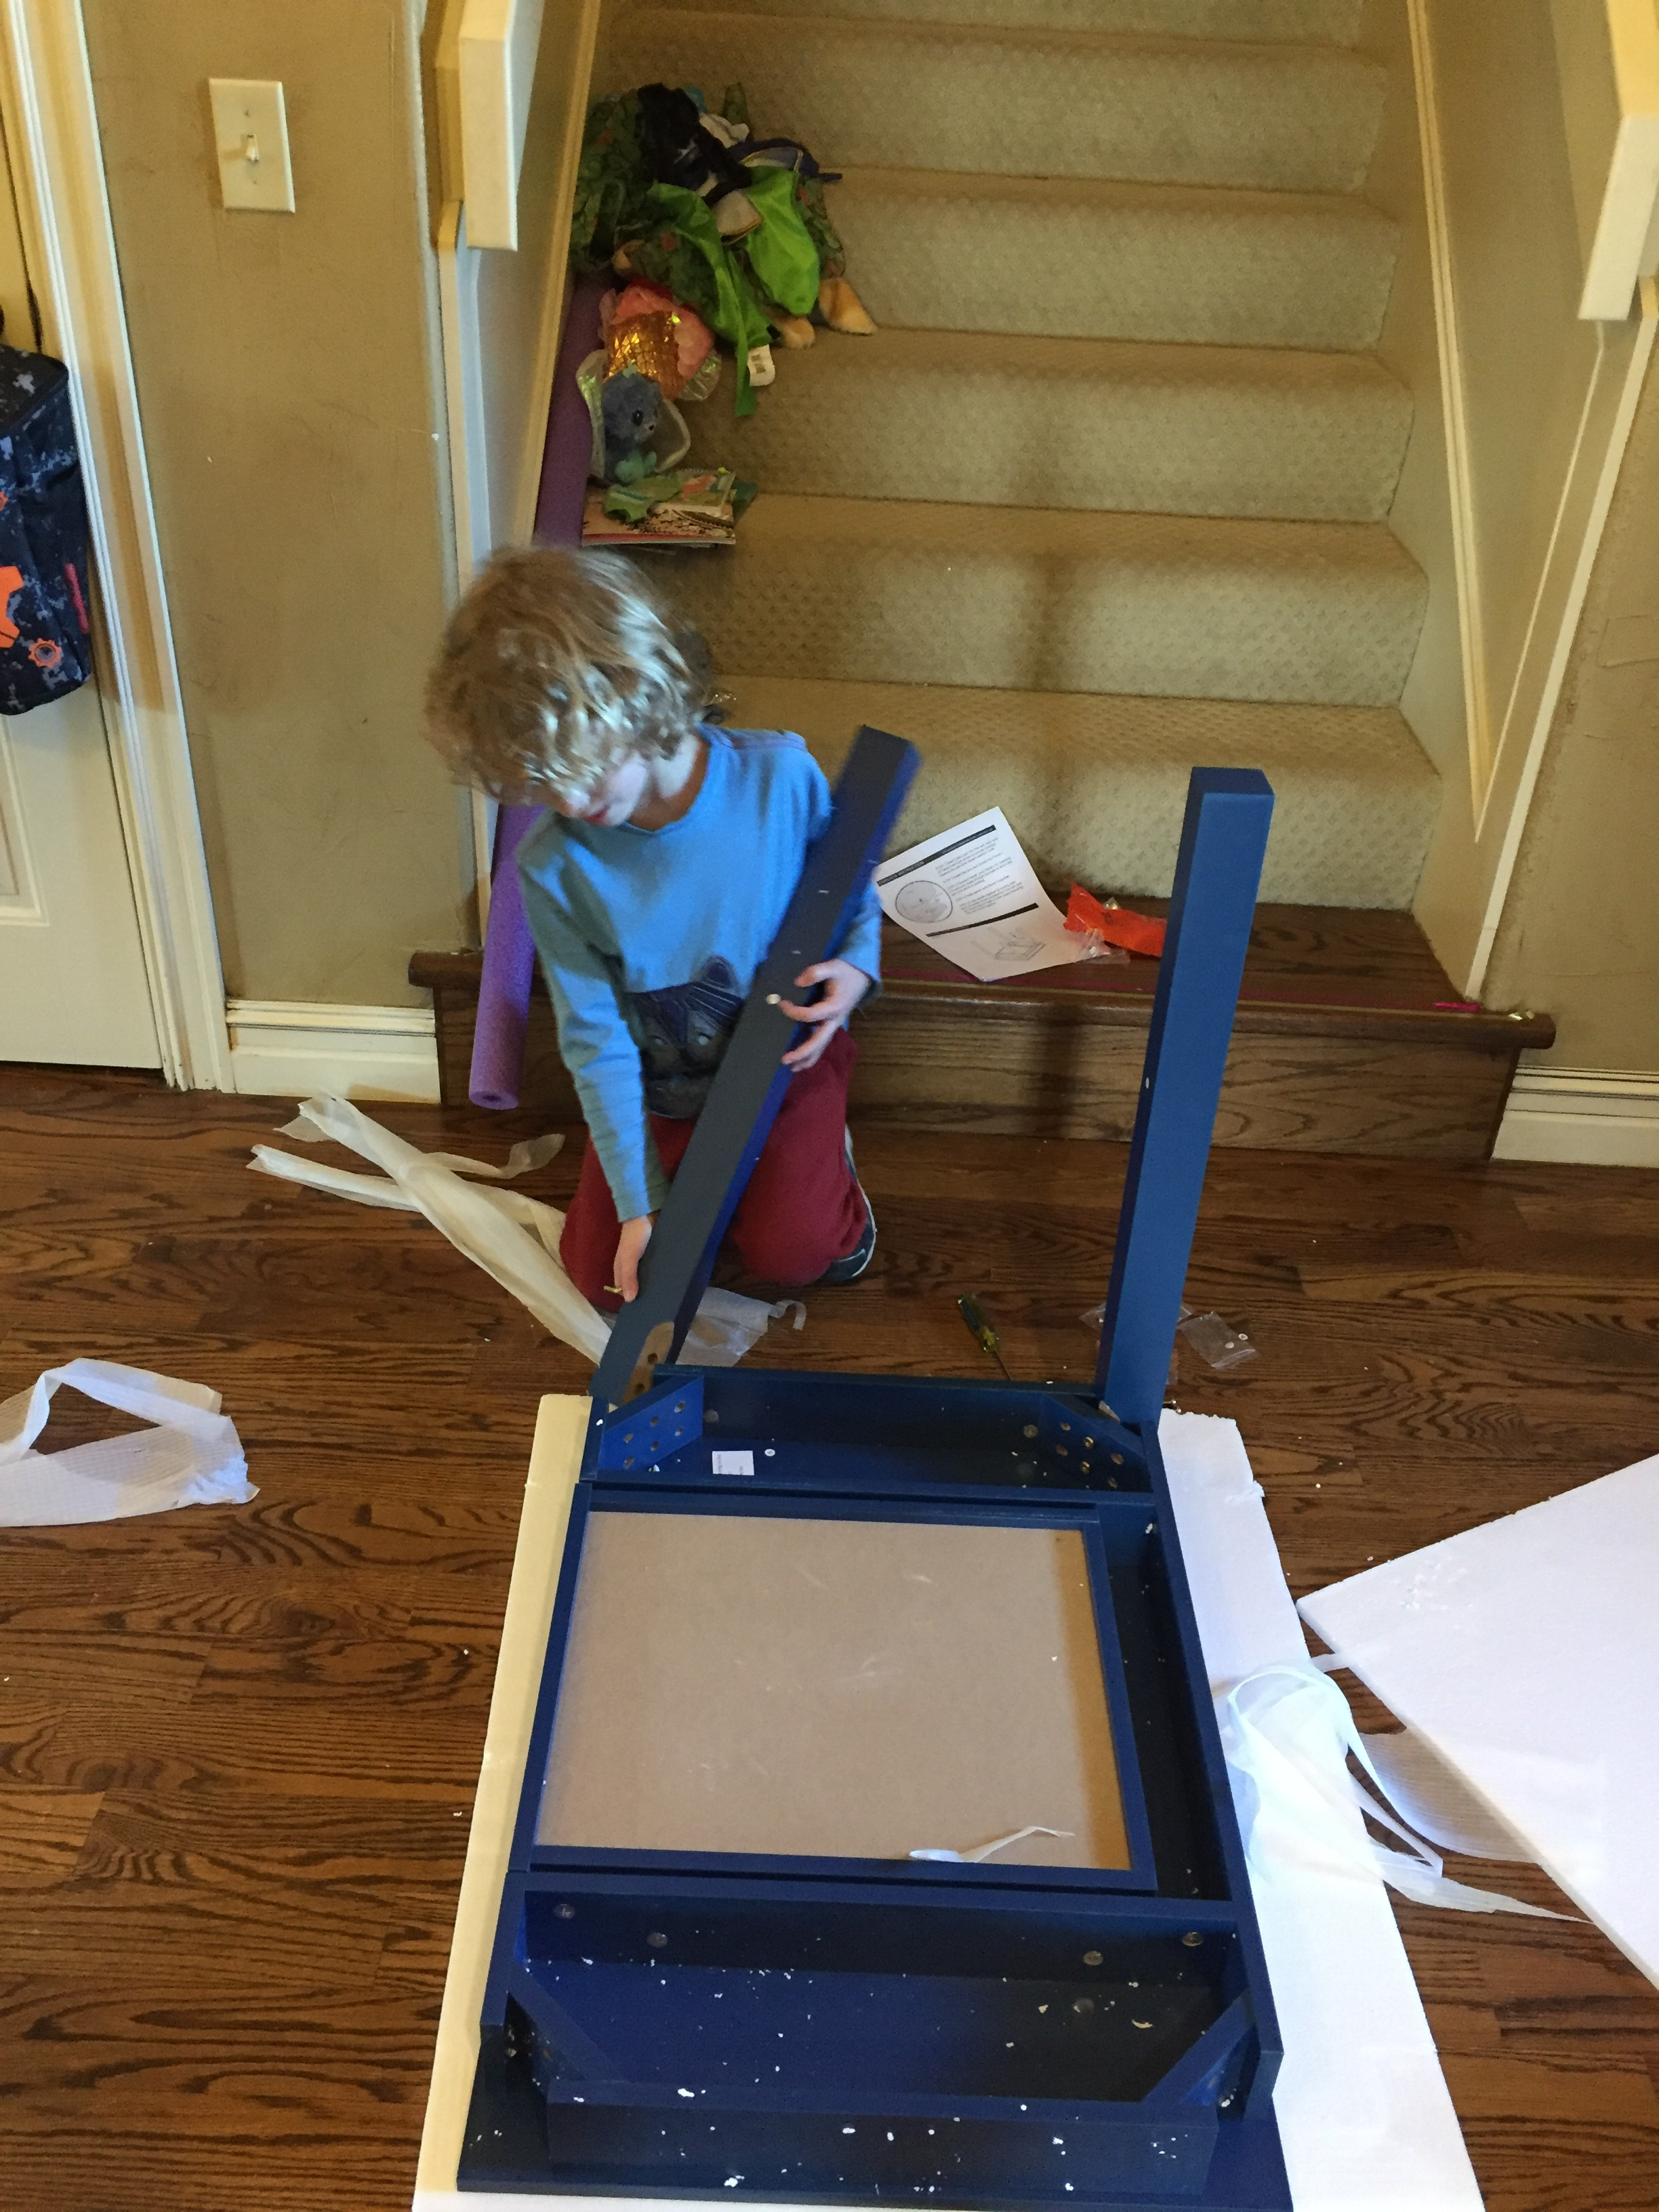 DZ helped assemble some new furniture for his room =)